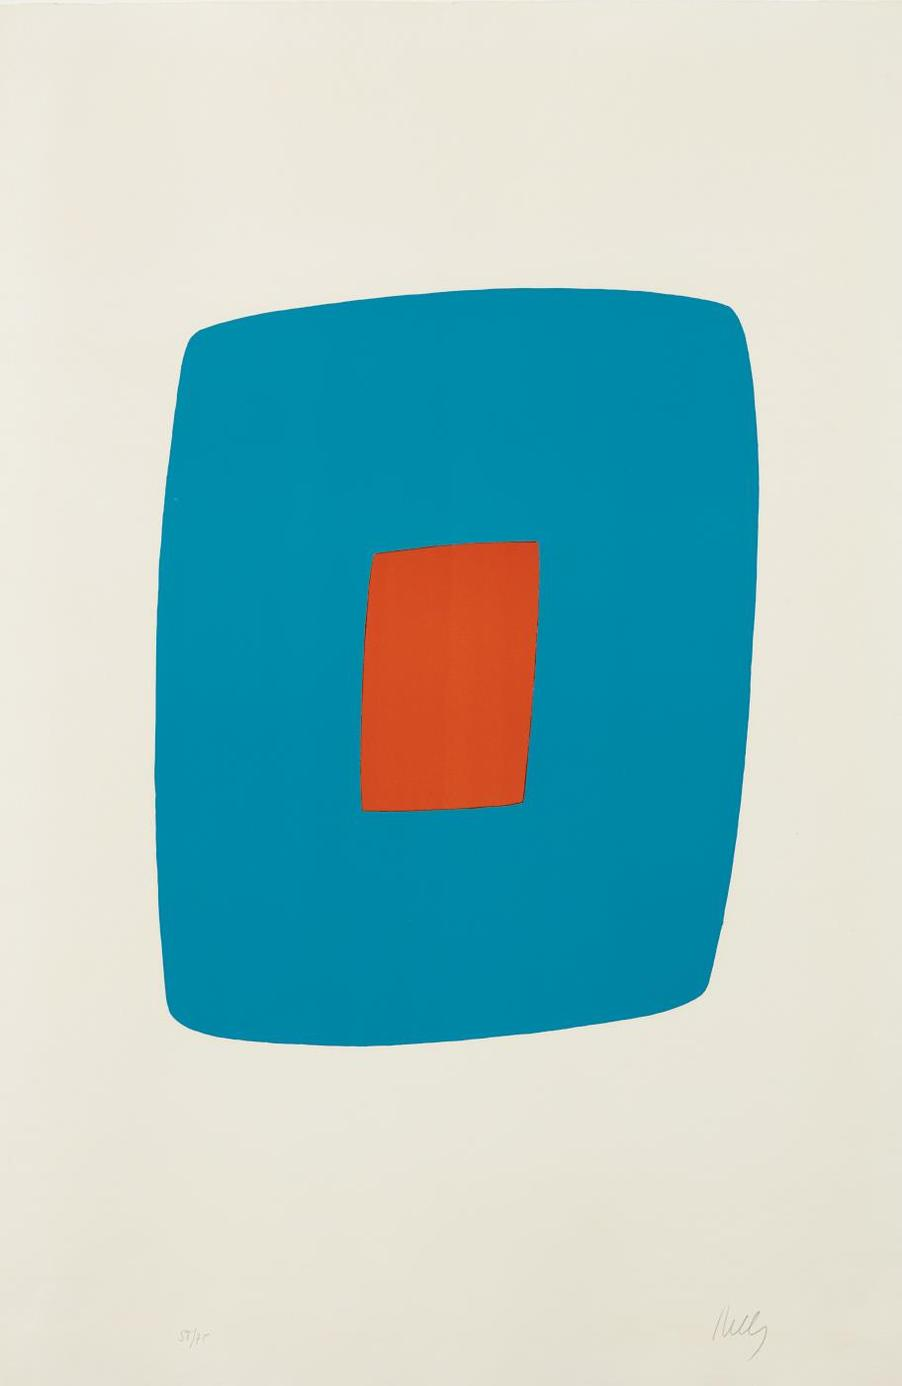 Ellsworth Kelly-Light Blue With Orange (Bleu Clair Avec Orange),From The Suite Of Twenty-Seven Color Lithographs-1965